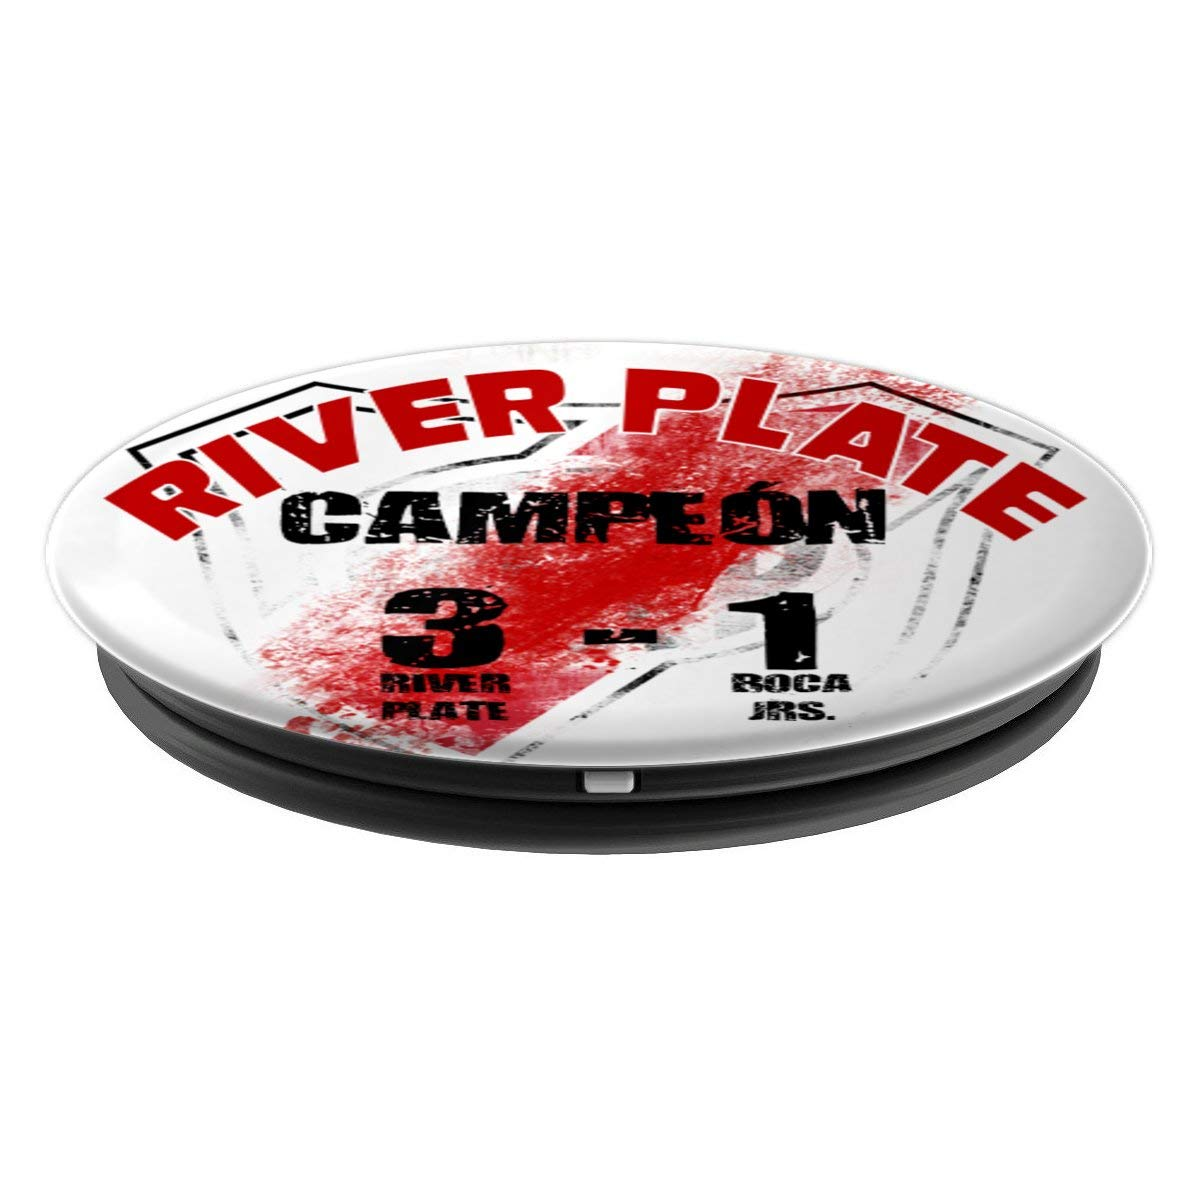 Amazon.com: River Plate champion Final Copa Libertadores - PopSockets Grip and Stand for Phones and Tablets: Cell Phones & Accessories